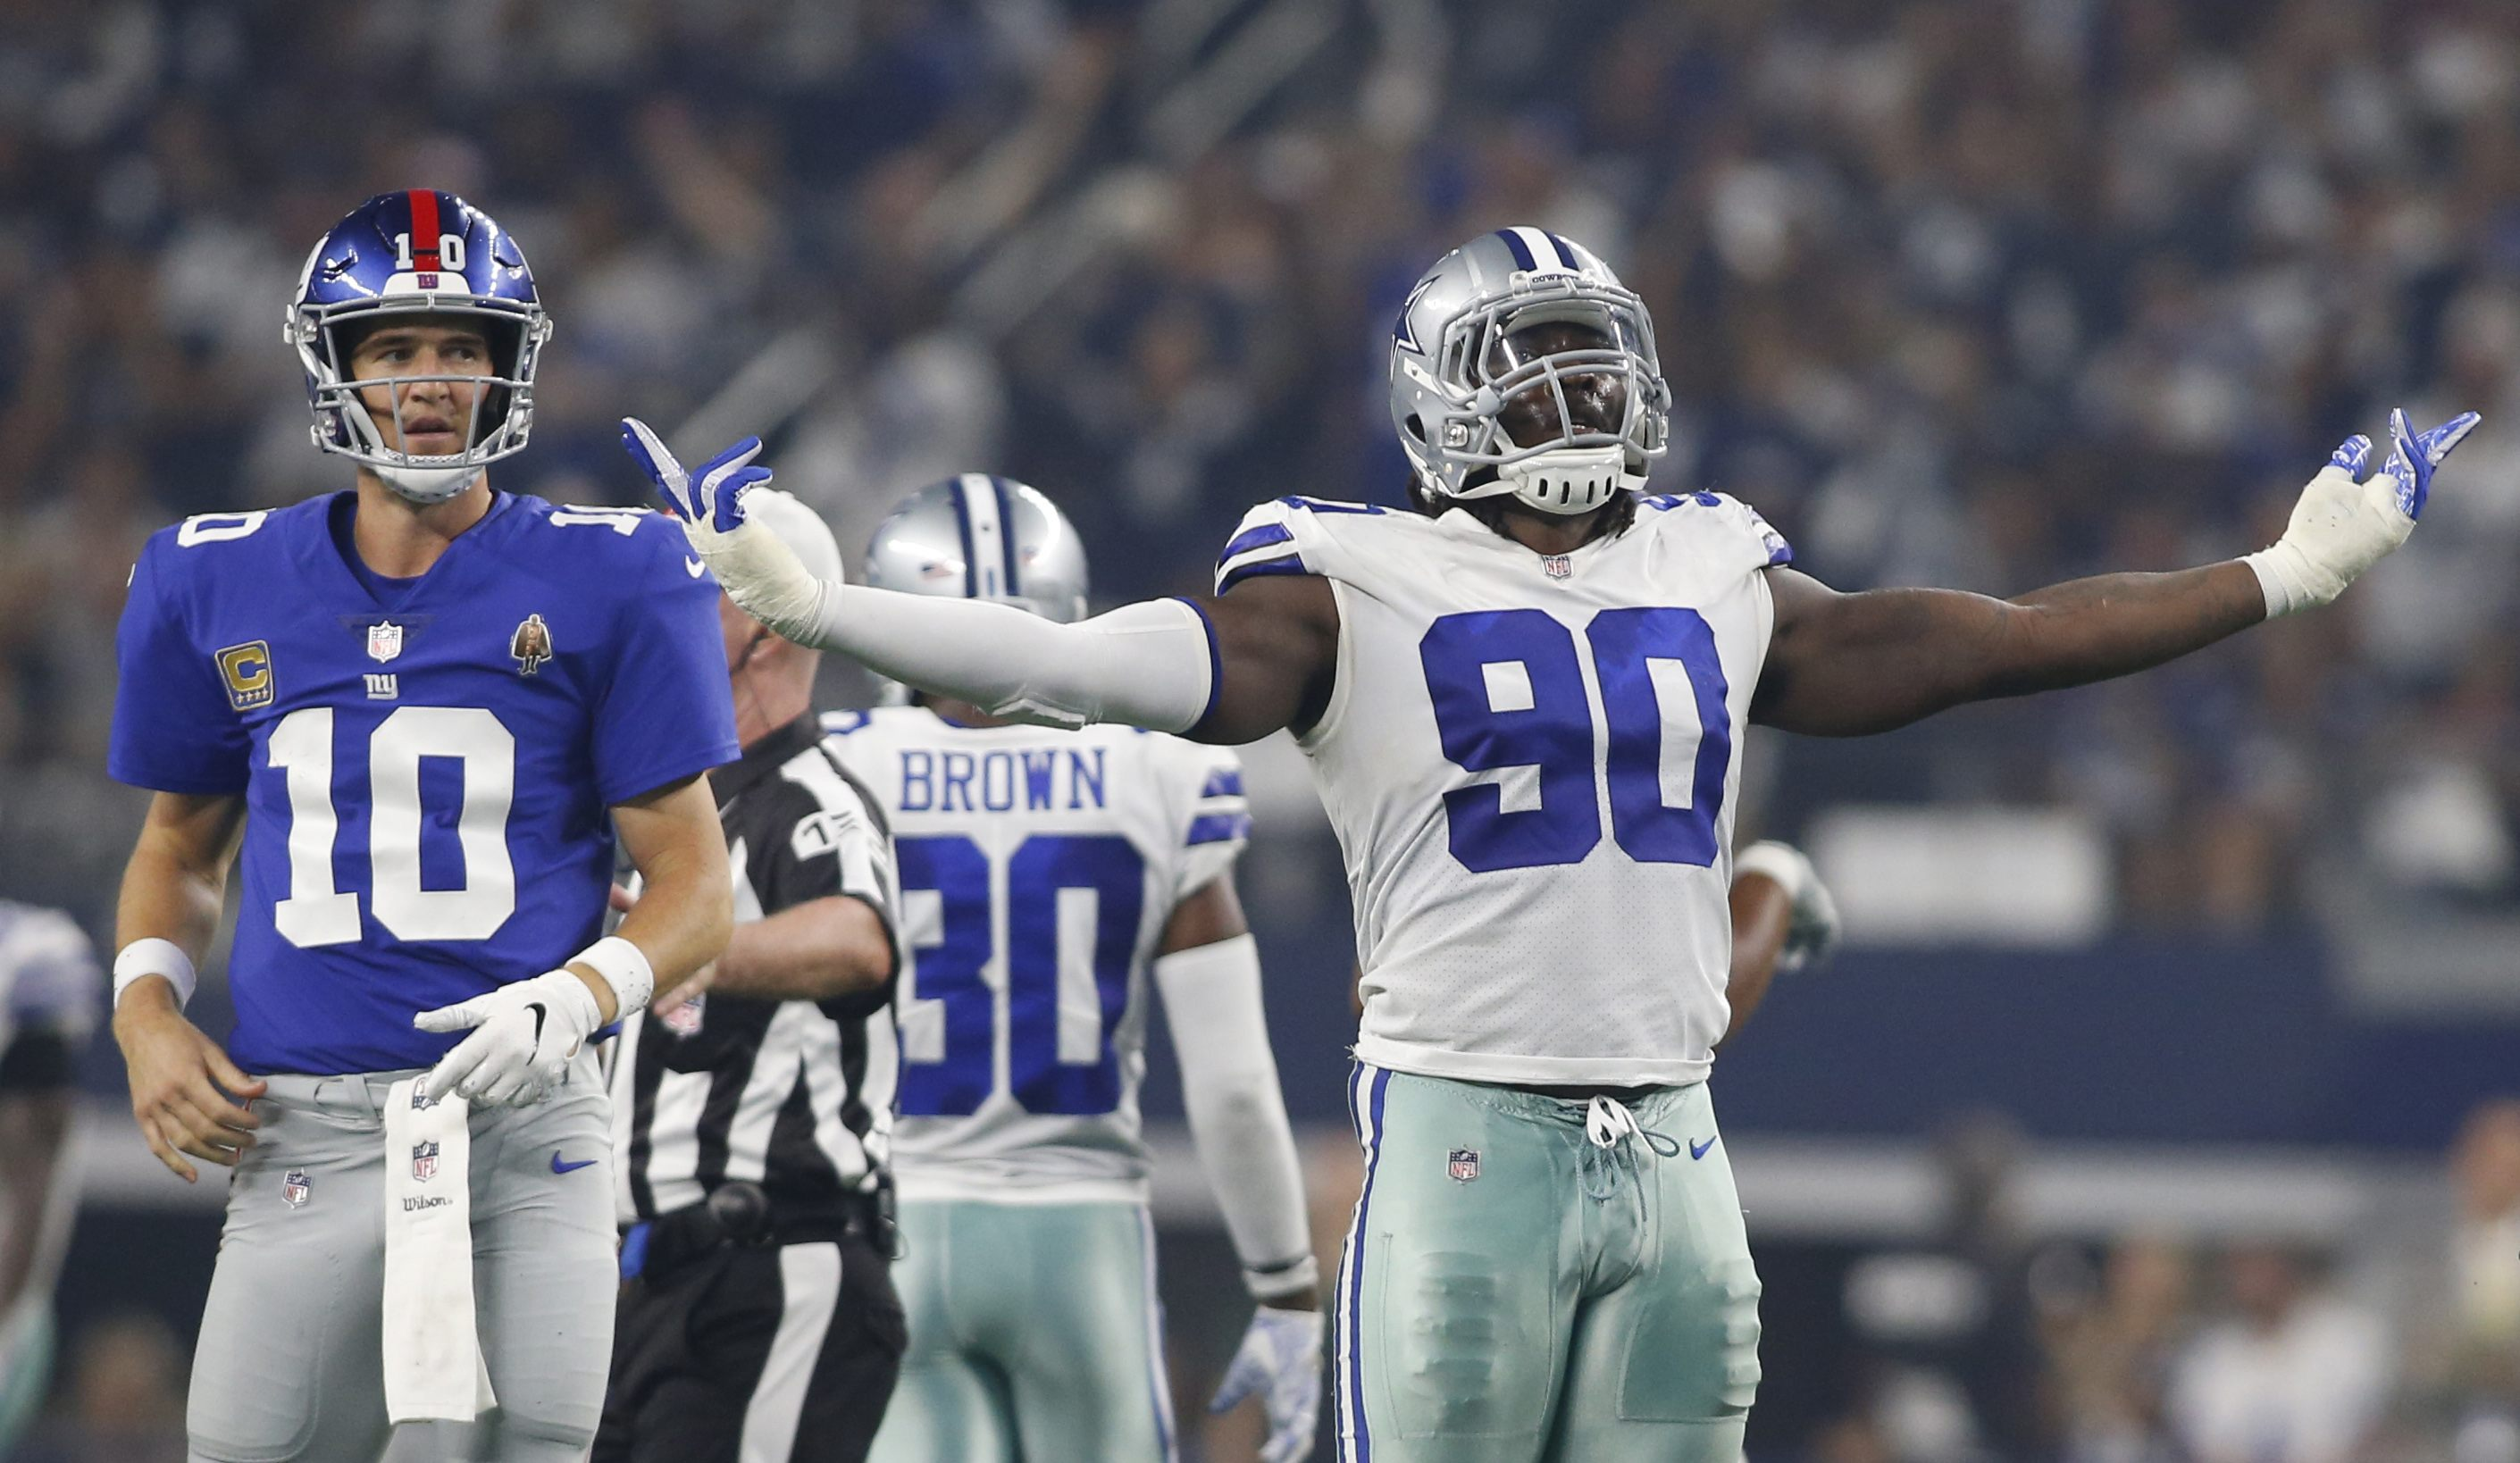 Sean-martin_game-notes_seans-scout-cowboys-blitzes-keep-giants-play-makers-in-check